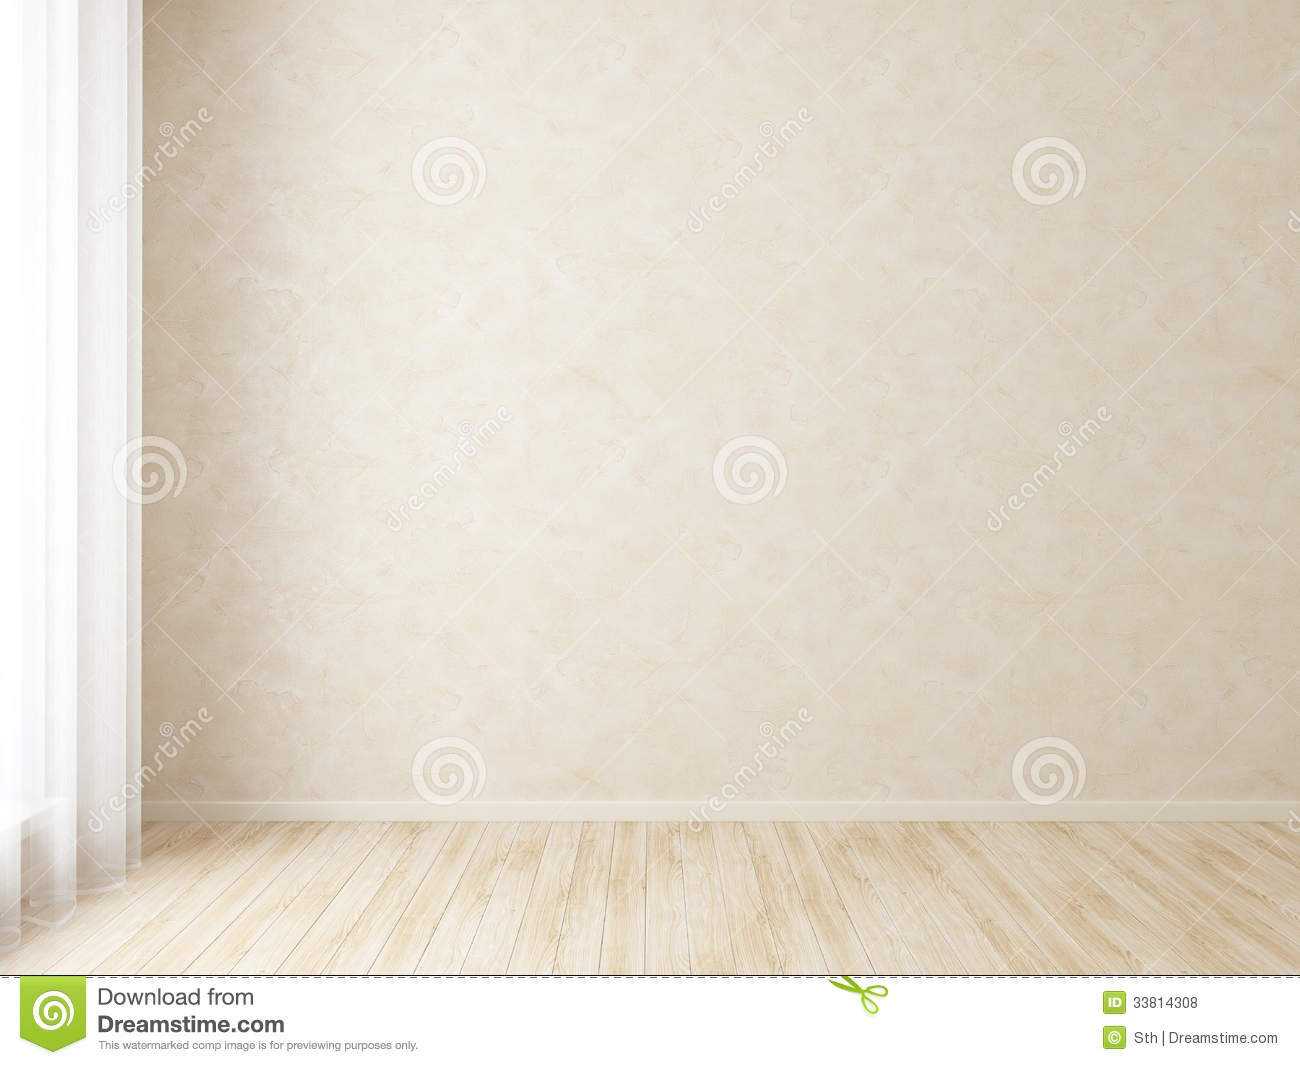 Modern empty interior room royalty free stock photos - Interior stucco wall designs ...